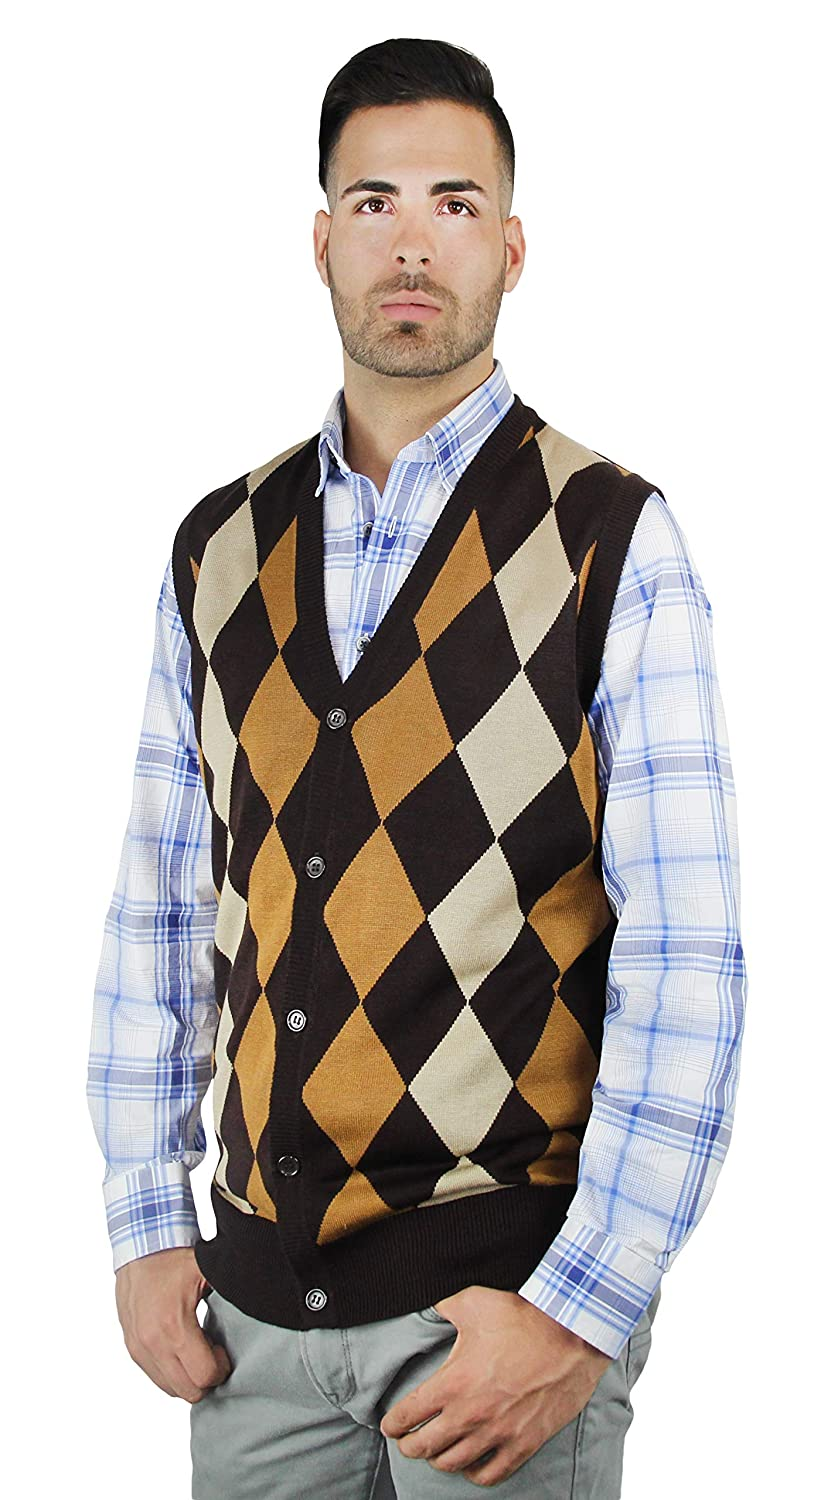 1920s Men's Sweaters, Pullovers, Cardigans Blue Ocean Argyle Button-Down Sweater Vest $25.00 AT vintagedancer.com